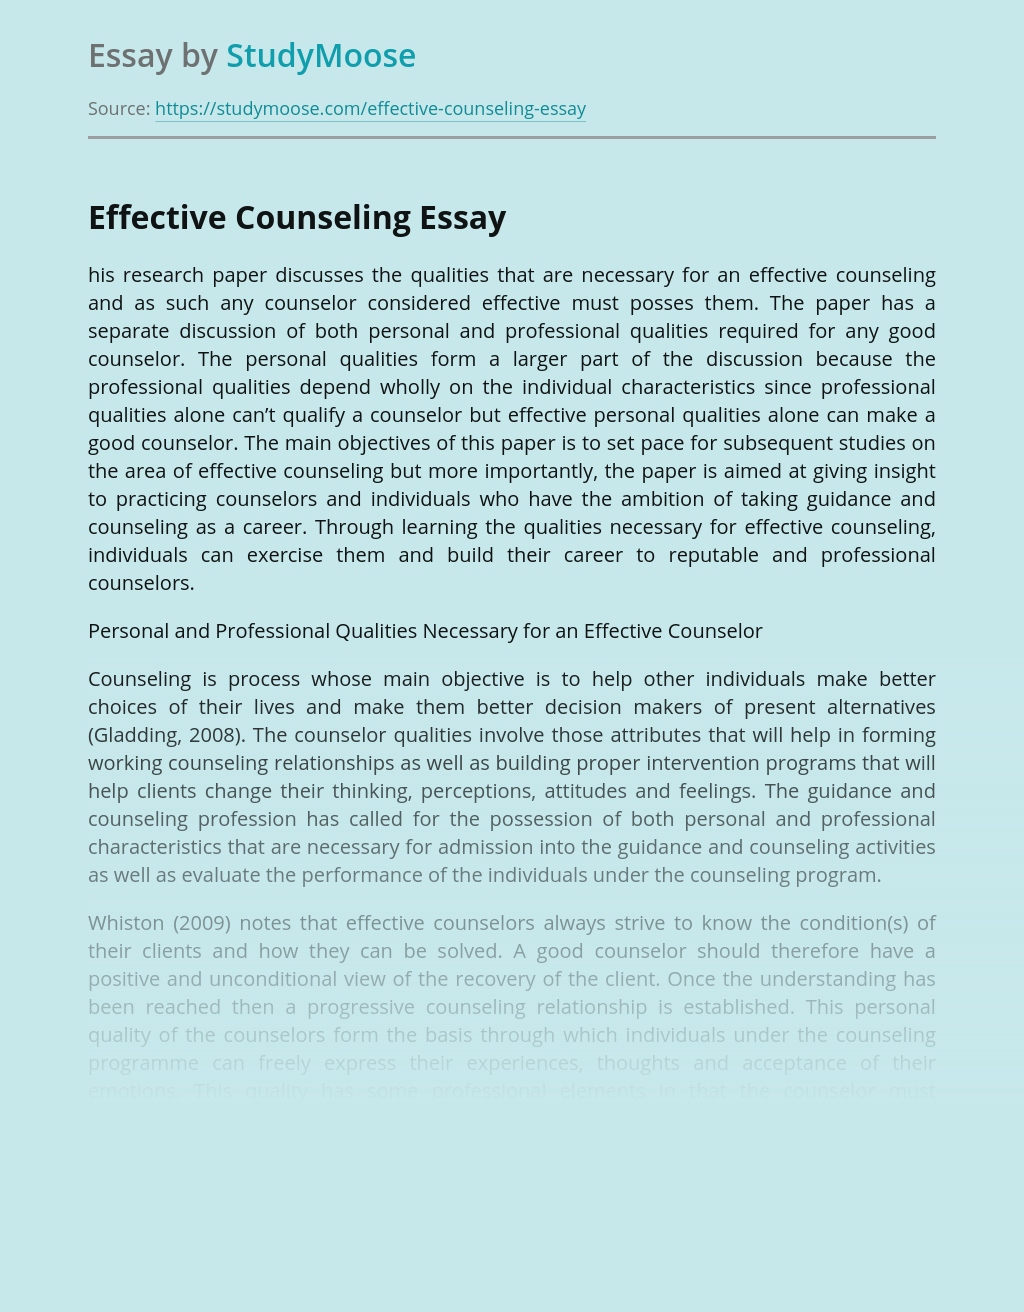 Qualities Needed for Effective Counseling